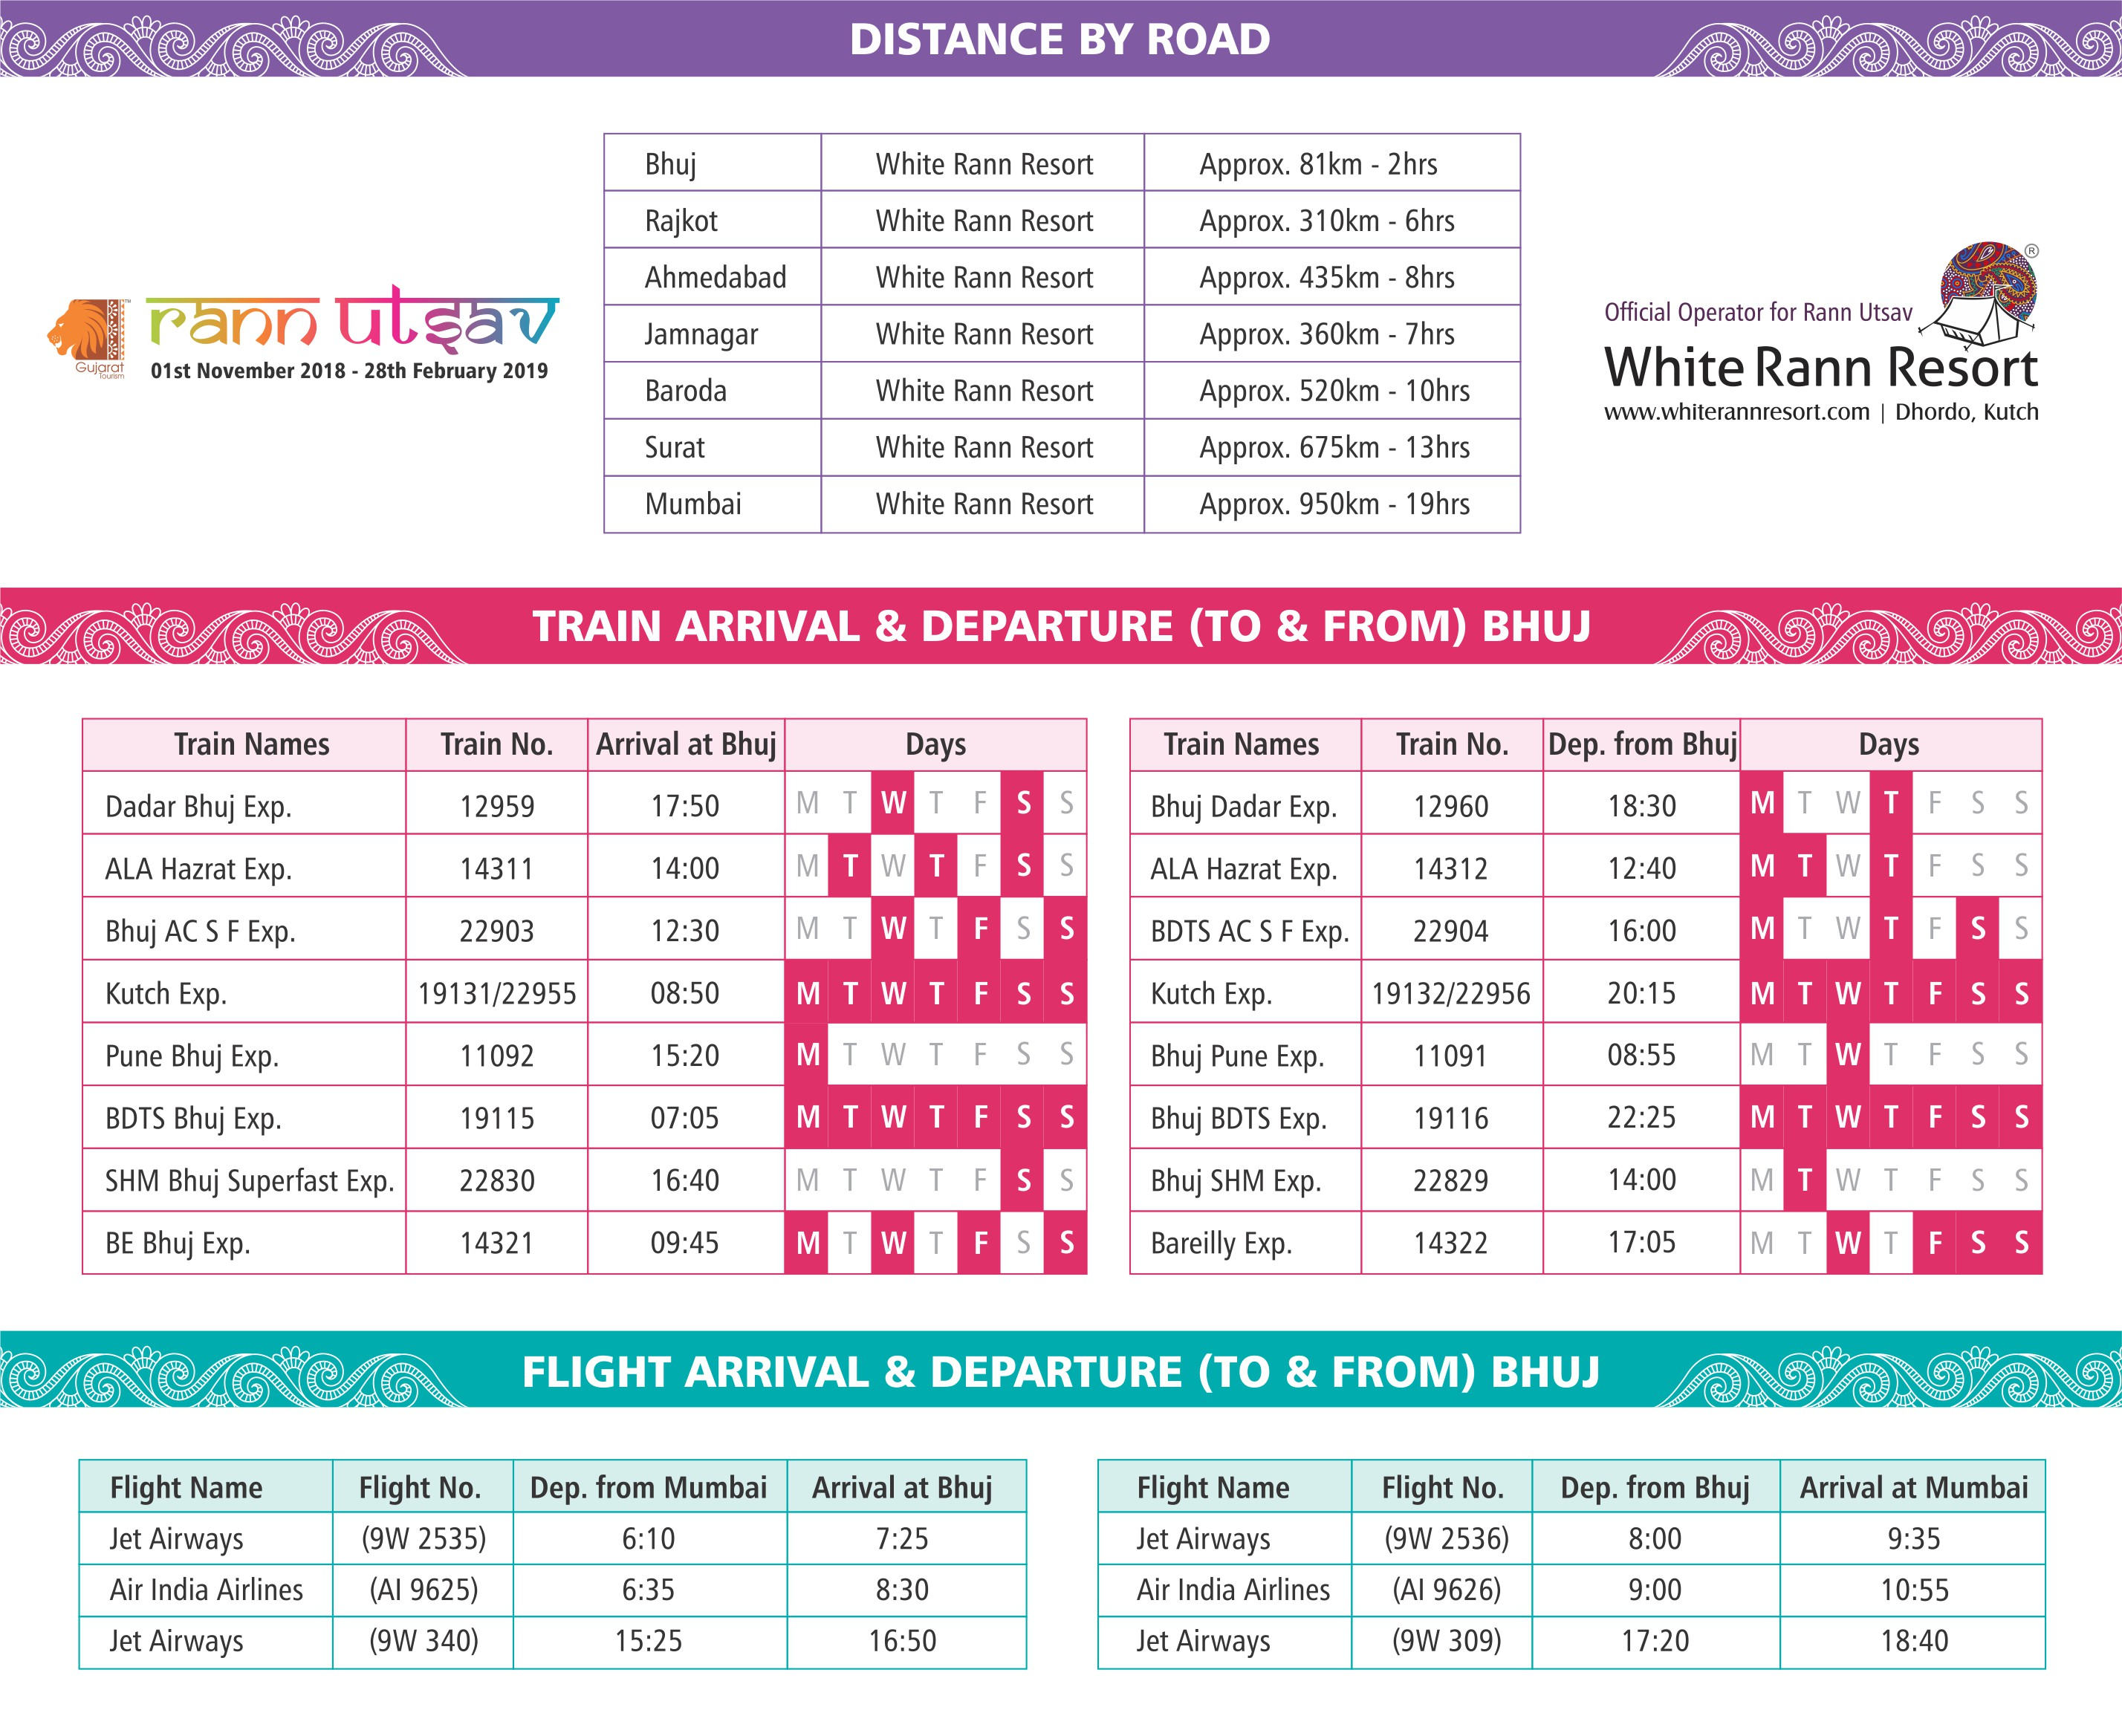 Rann Utsav Distance in Kutch,White Rann Resort 2018-2019